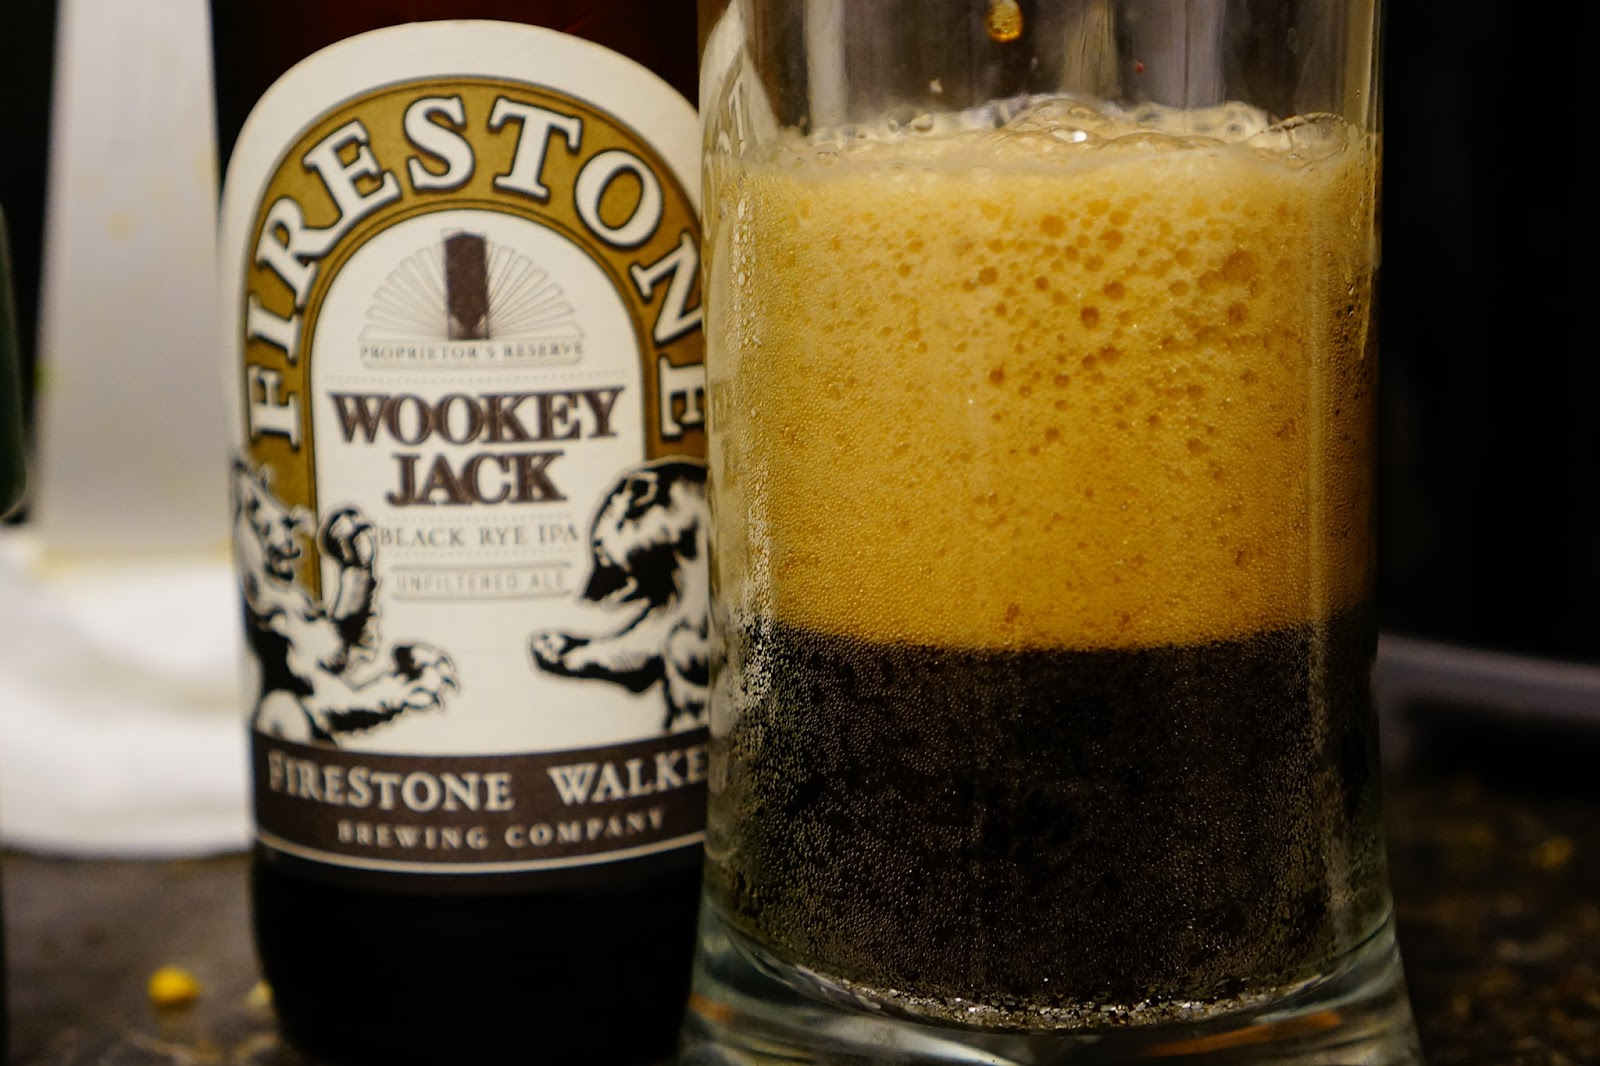 Firestone Walker Wookey Jack partial pour